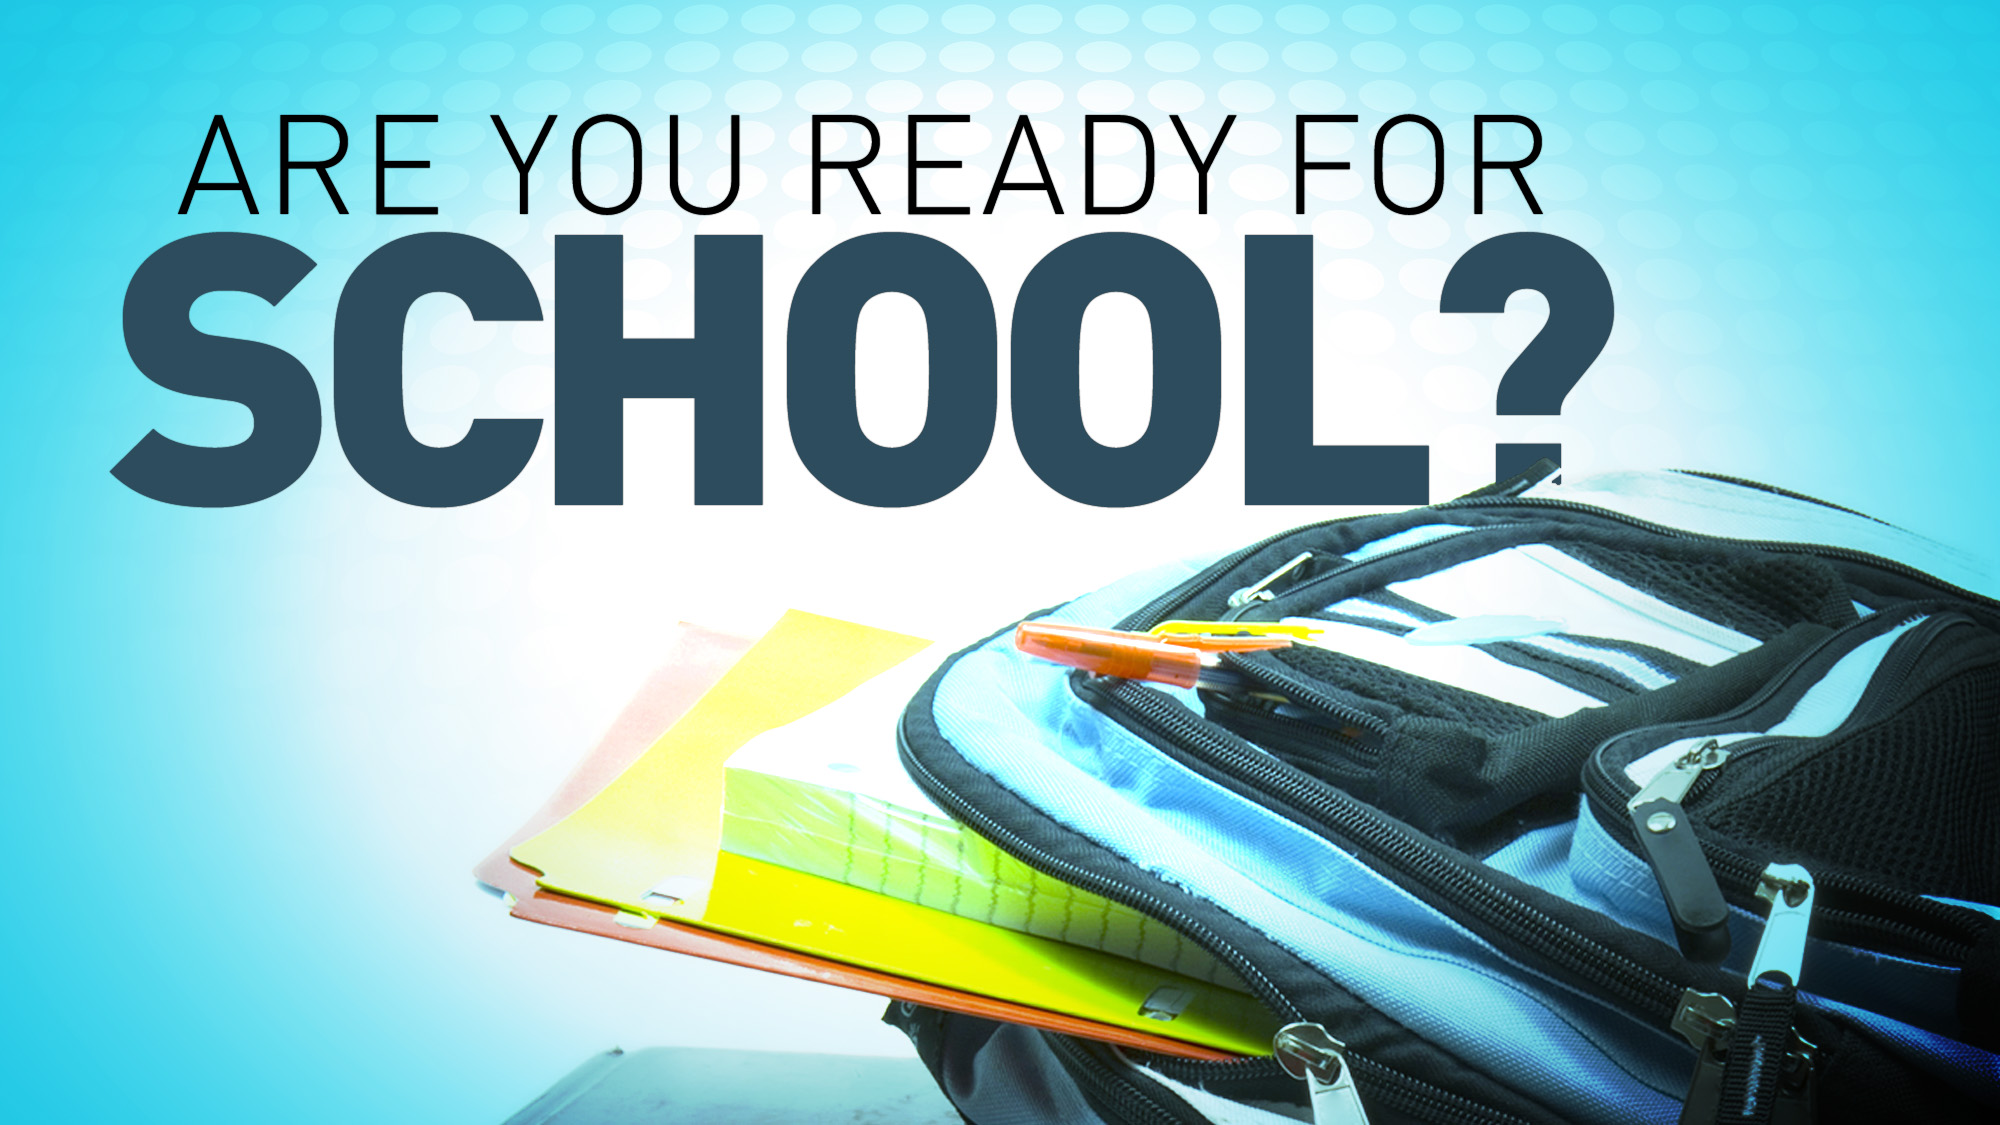 Kinder Garden: Are You Ready For School?